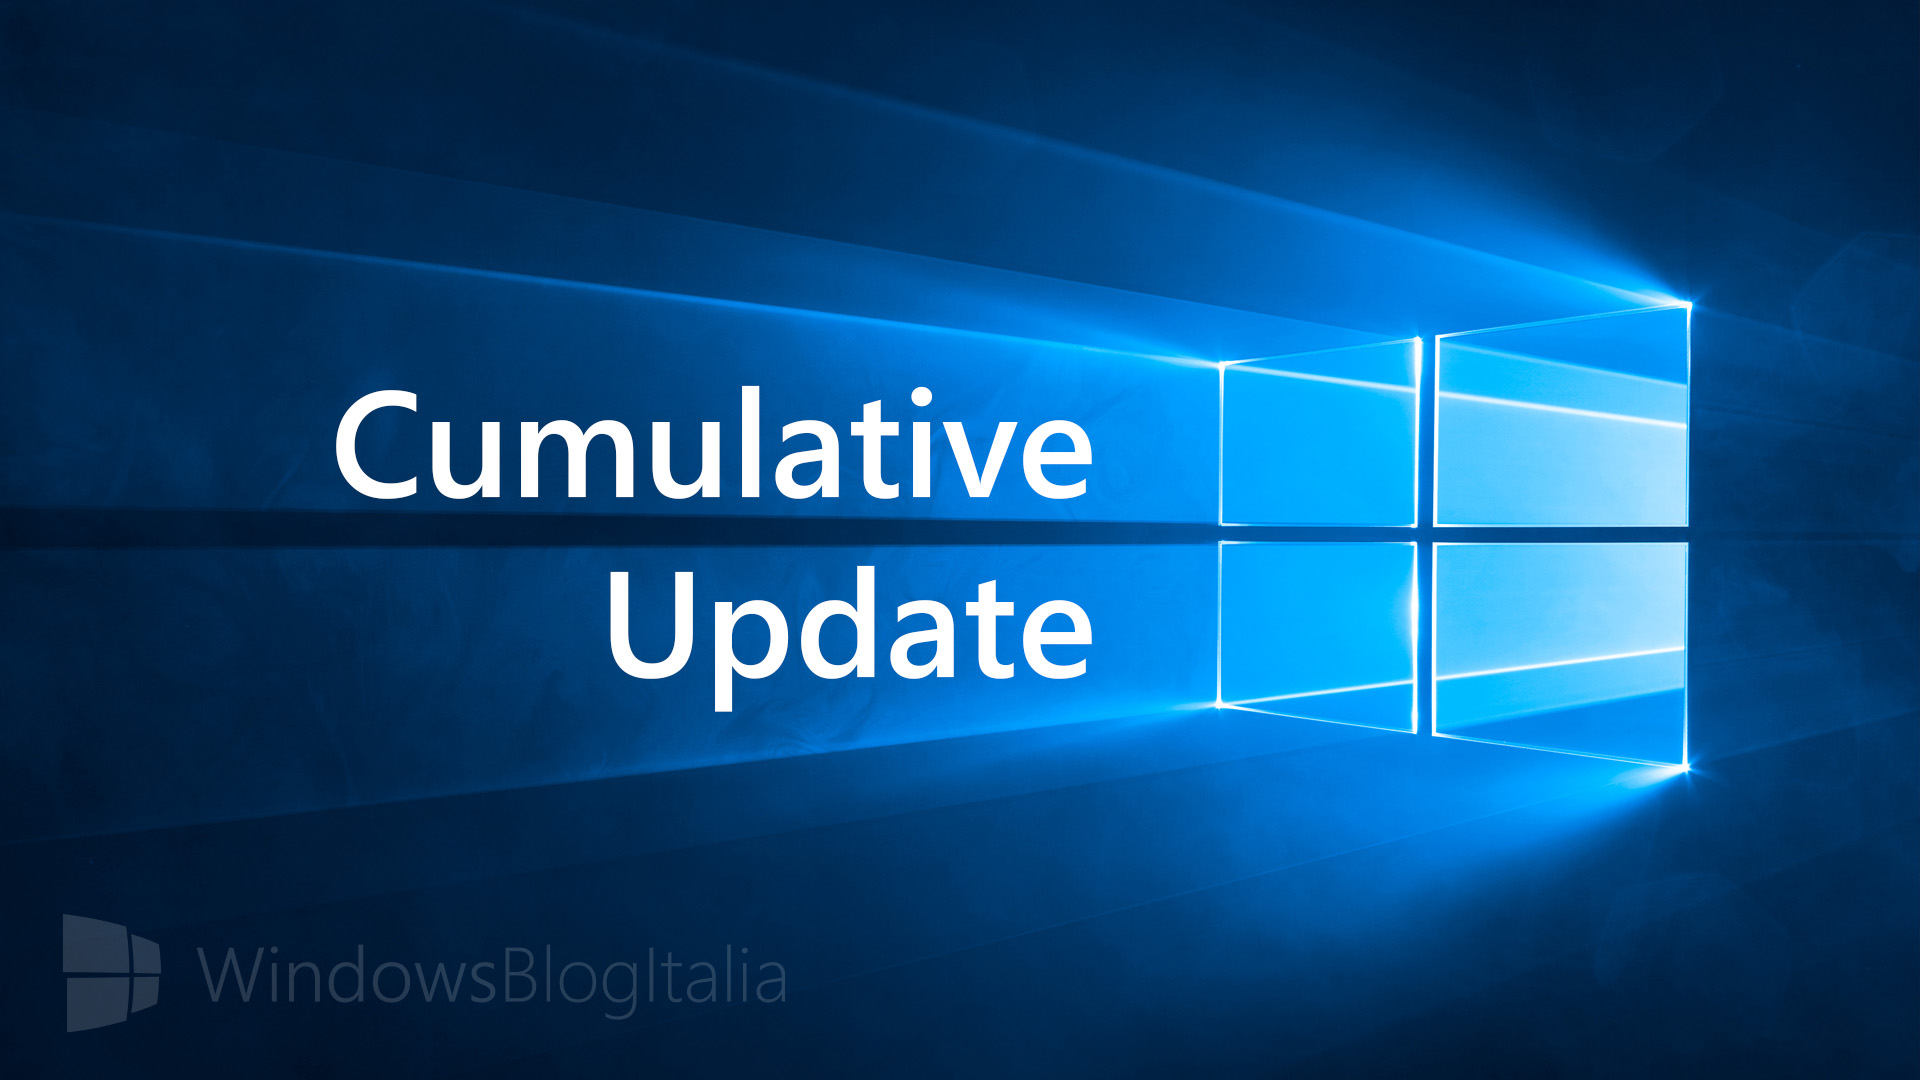 Cumulative Update